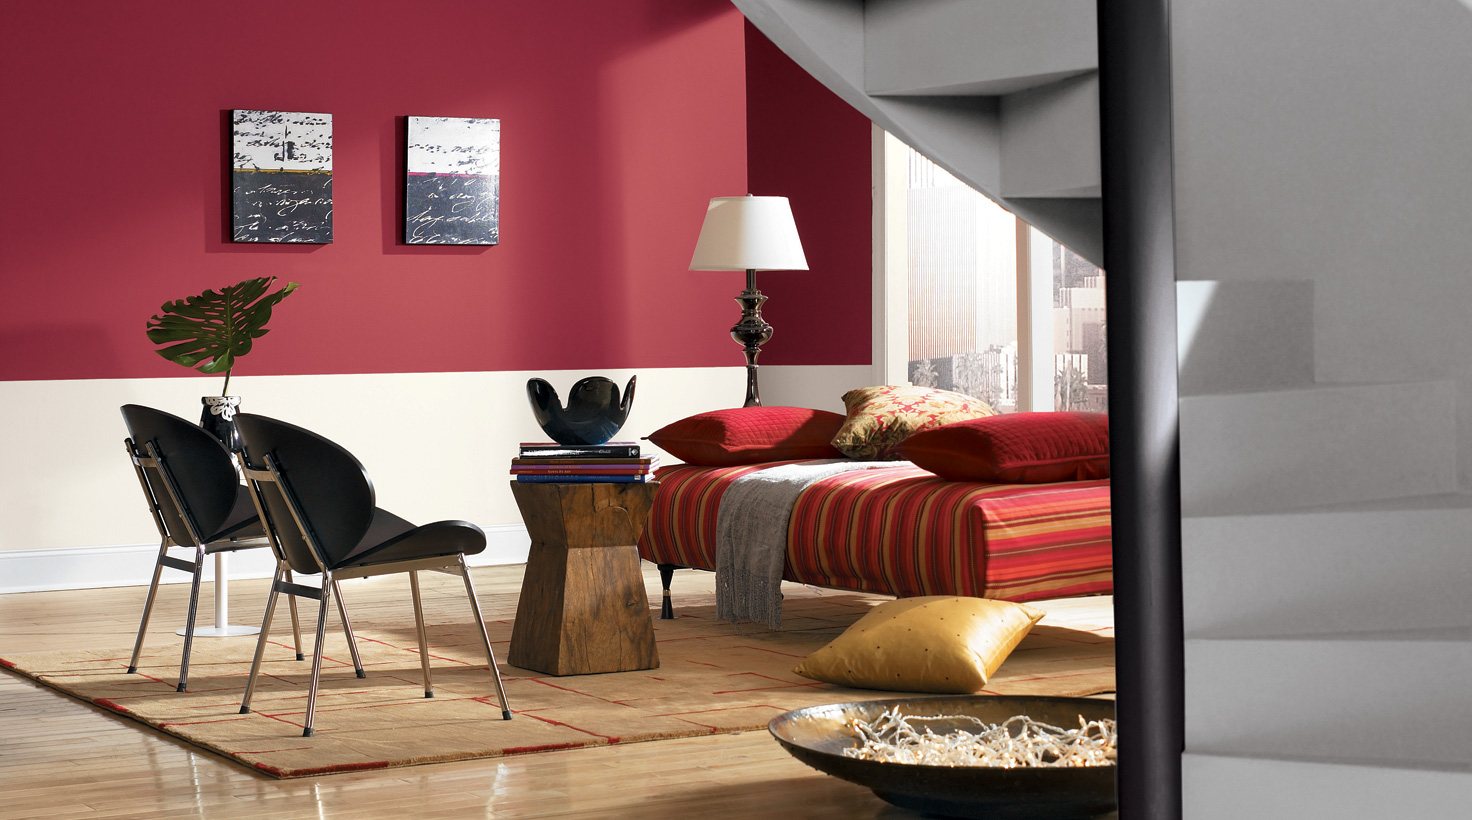 Interior House Painting Ideas Living room paint color ideas inspiration gallery sherwin williams living room reds sisterspd